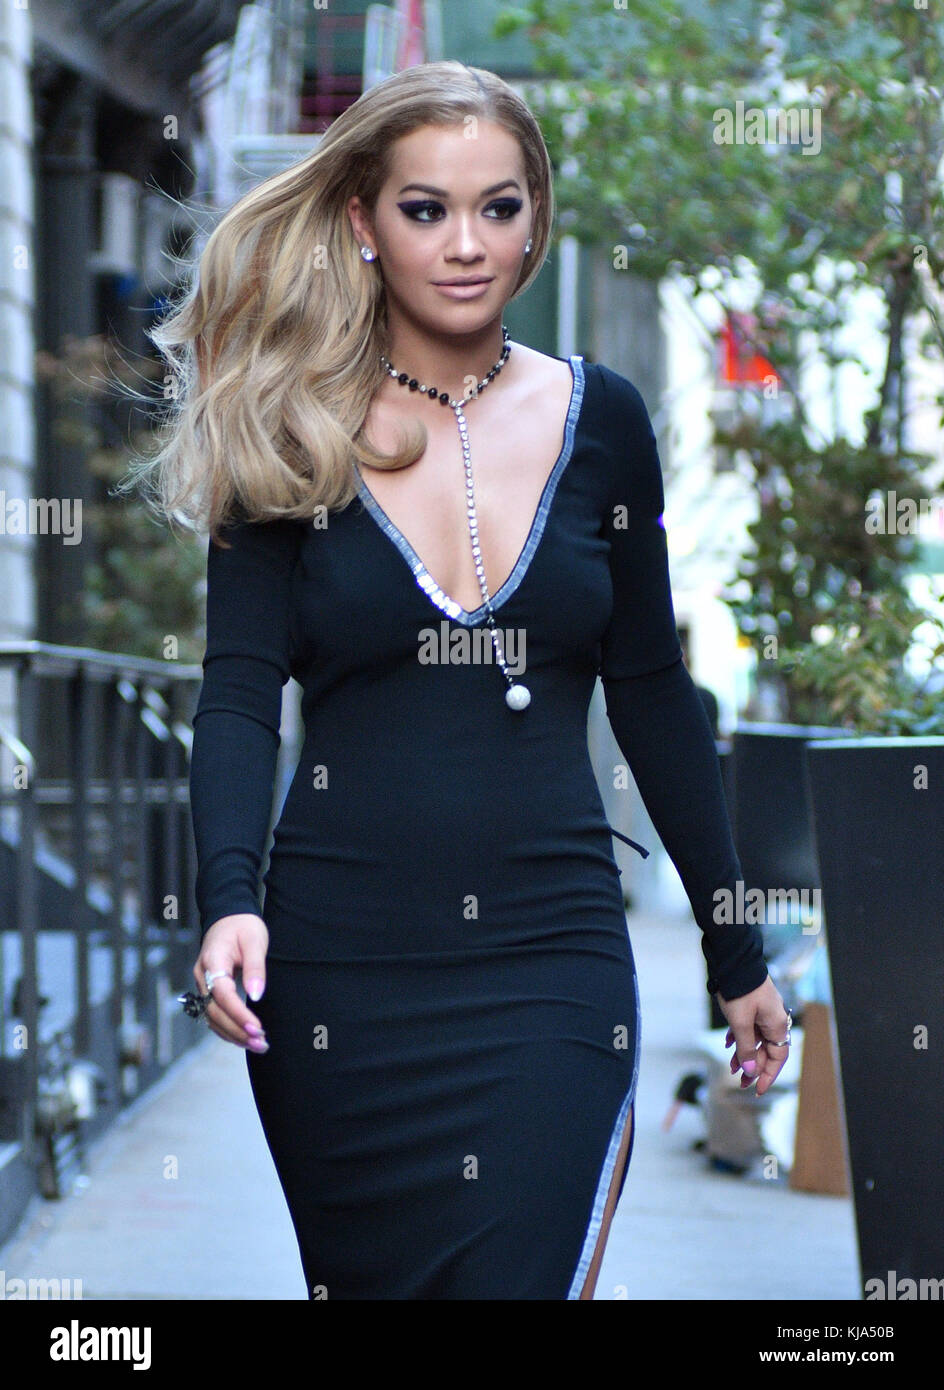 New York Ny August 24 Singer Rita Ora Wears An Evening Gown As